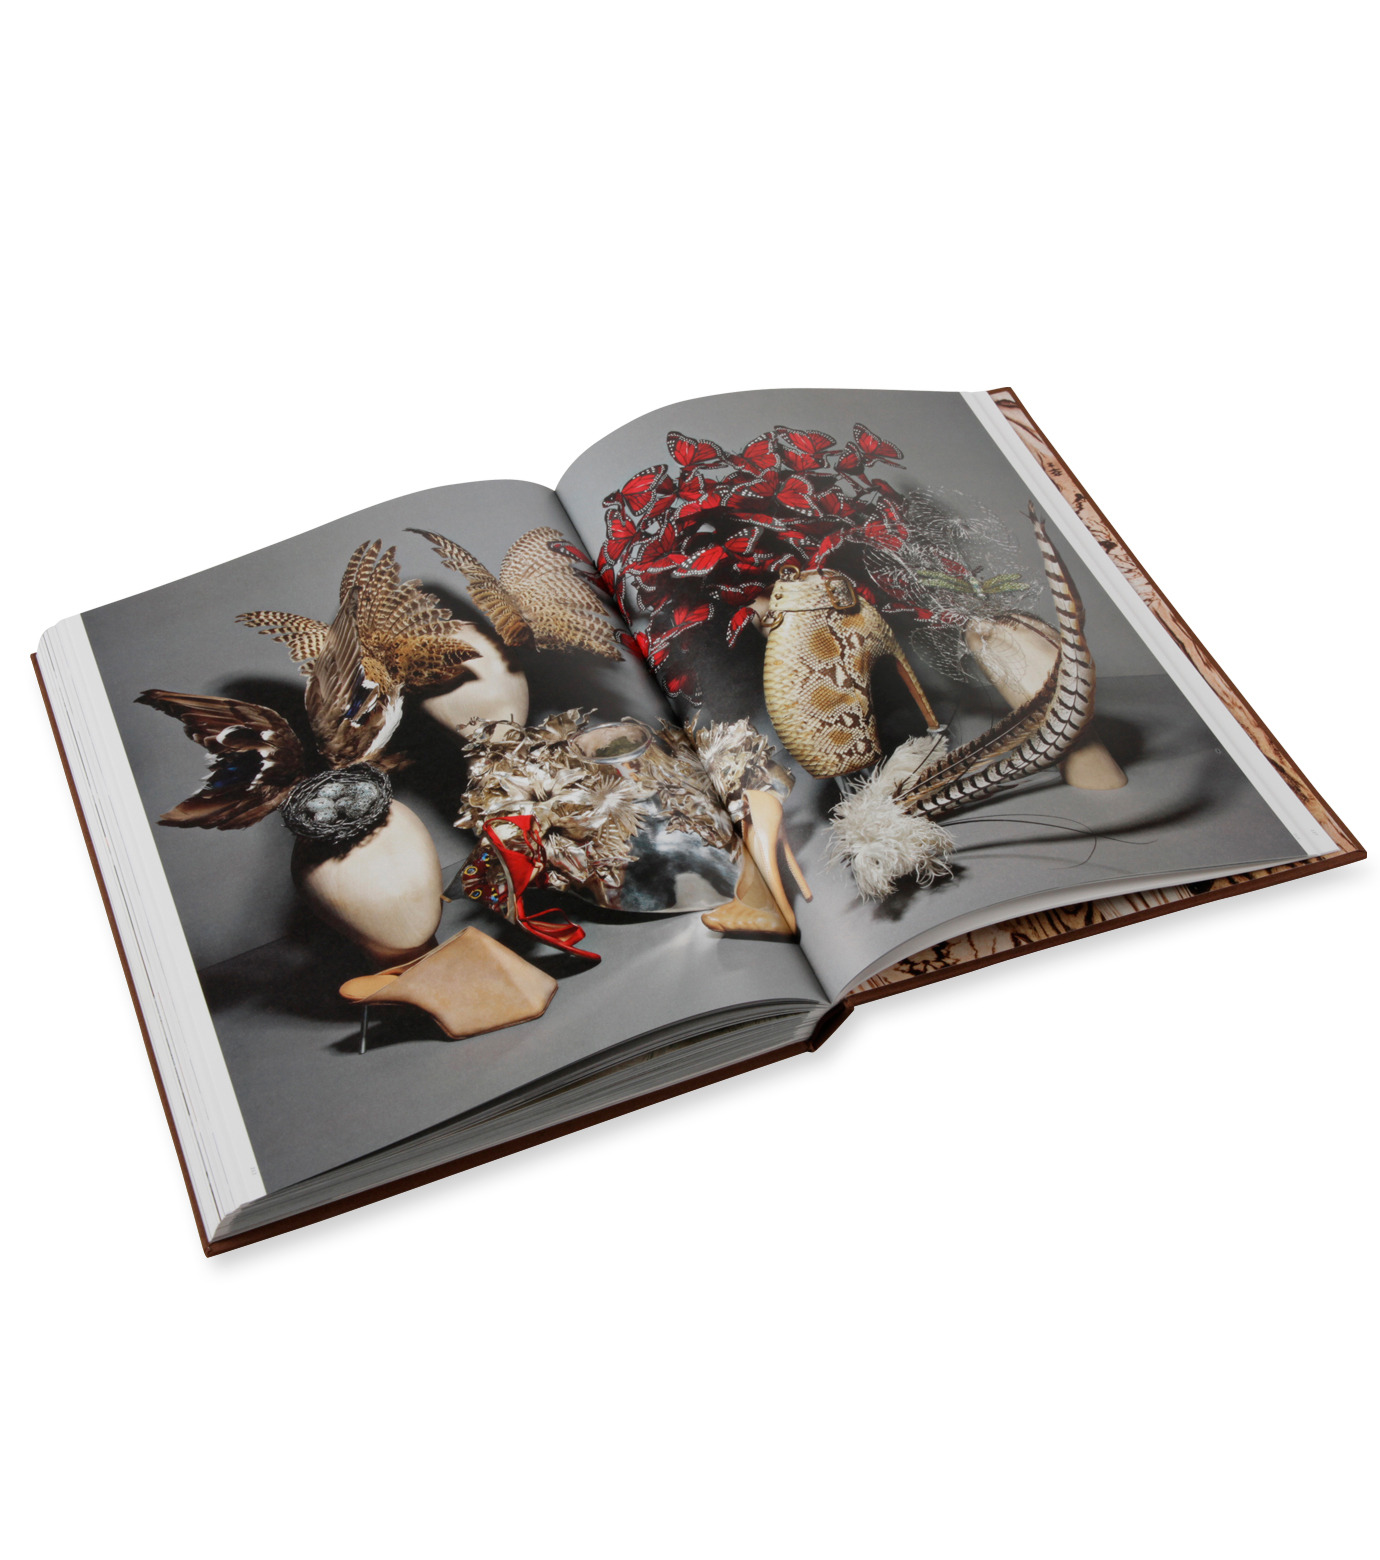 ArtBook(アートブック)のAlexander McQueen: Savage Beauty-SILVER(インテリア/OTHER-GOODS/interior/OTHER-GOODS)-300-16978-2-1 拡大詳細画像6